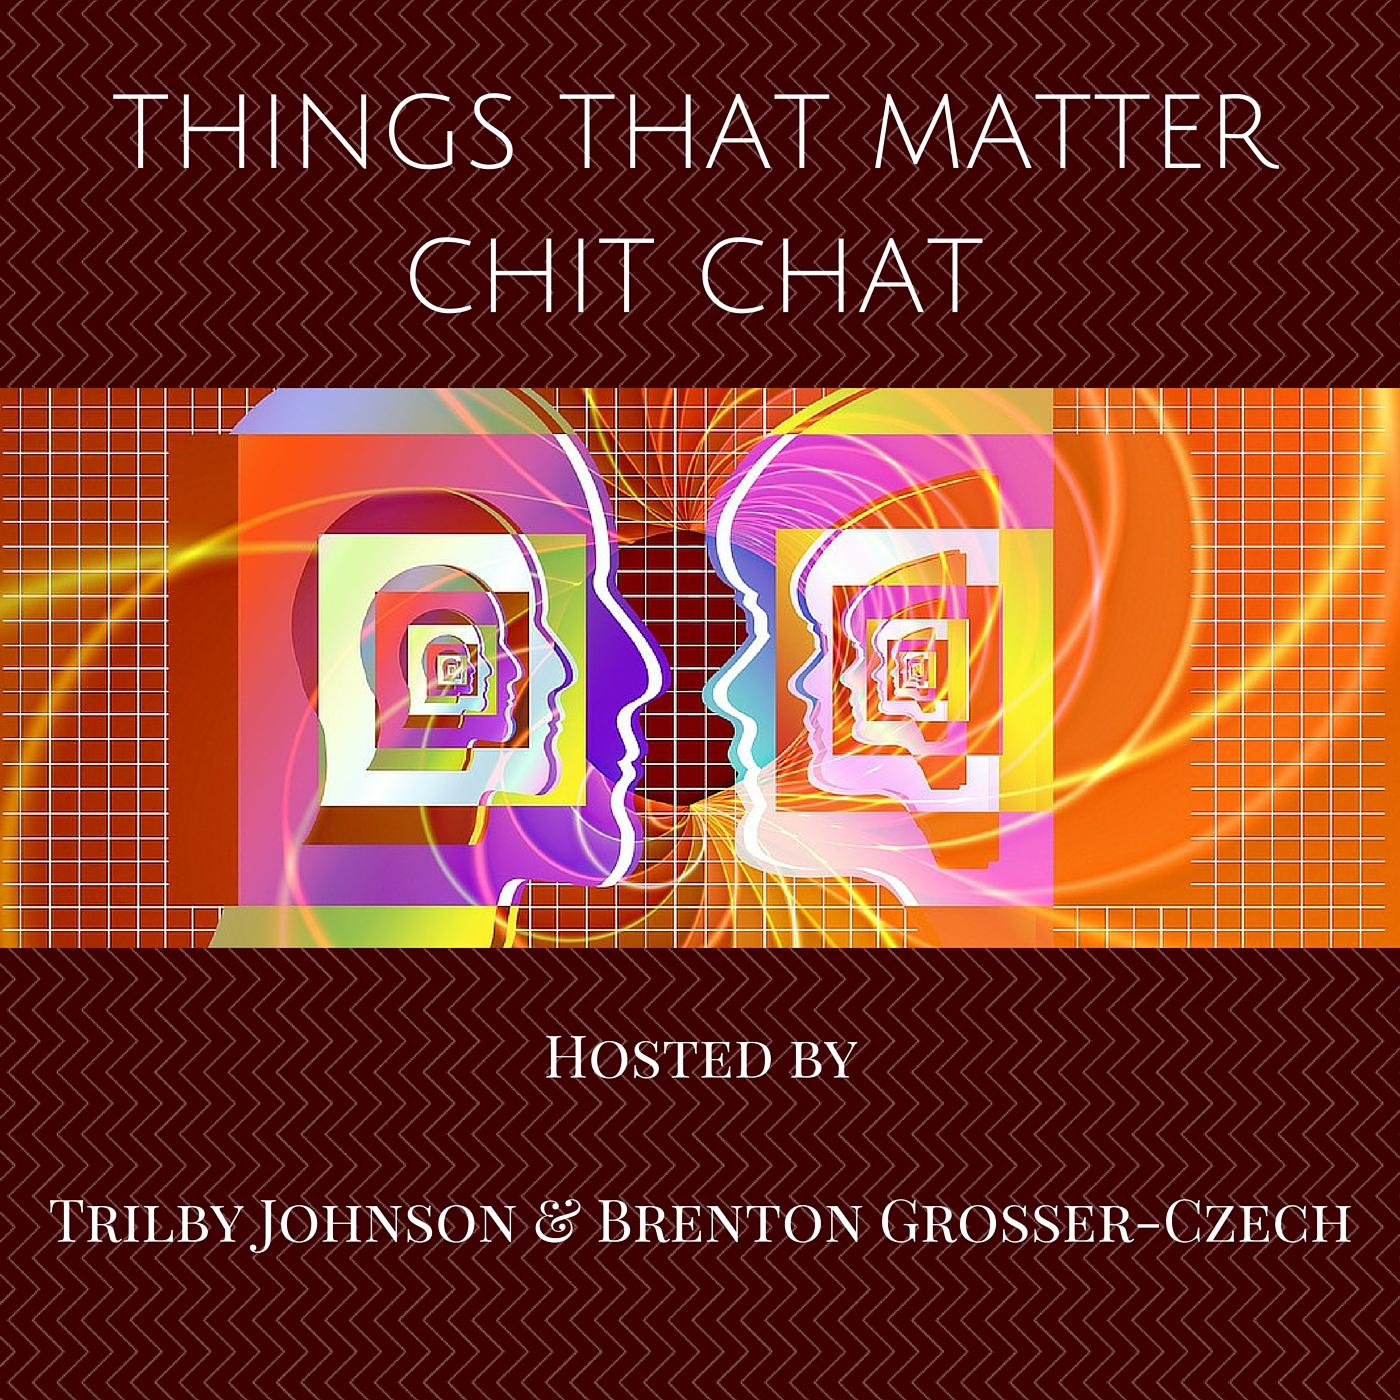 Things That Matter Chit Chat Show